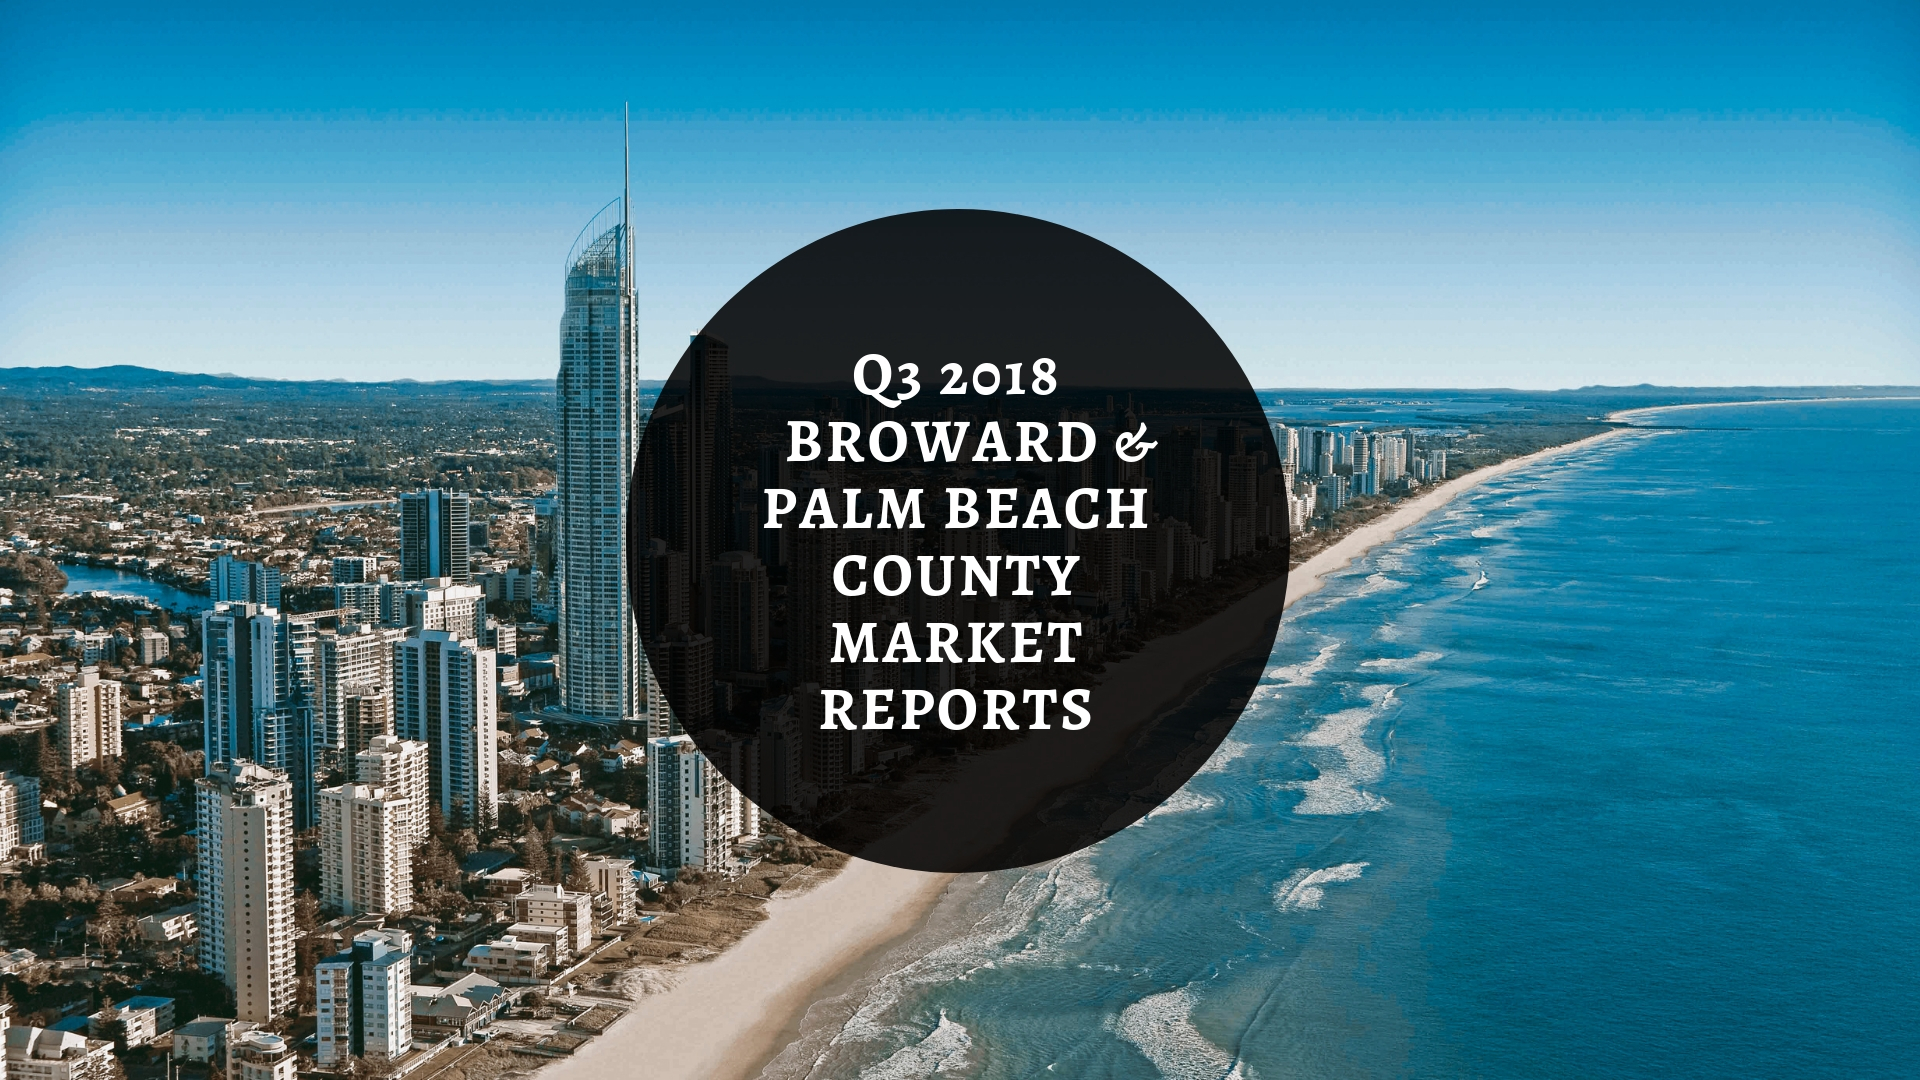 We Are Pleased To Provide You With This Copy Of Berger Commercial Realty Corp.'s 2018 Q3 Broward  And Palm Beach County Market Reports For The Office And Industrial Real Estate Markets